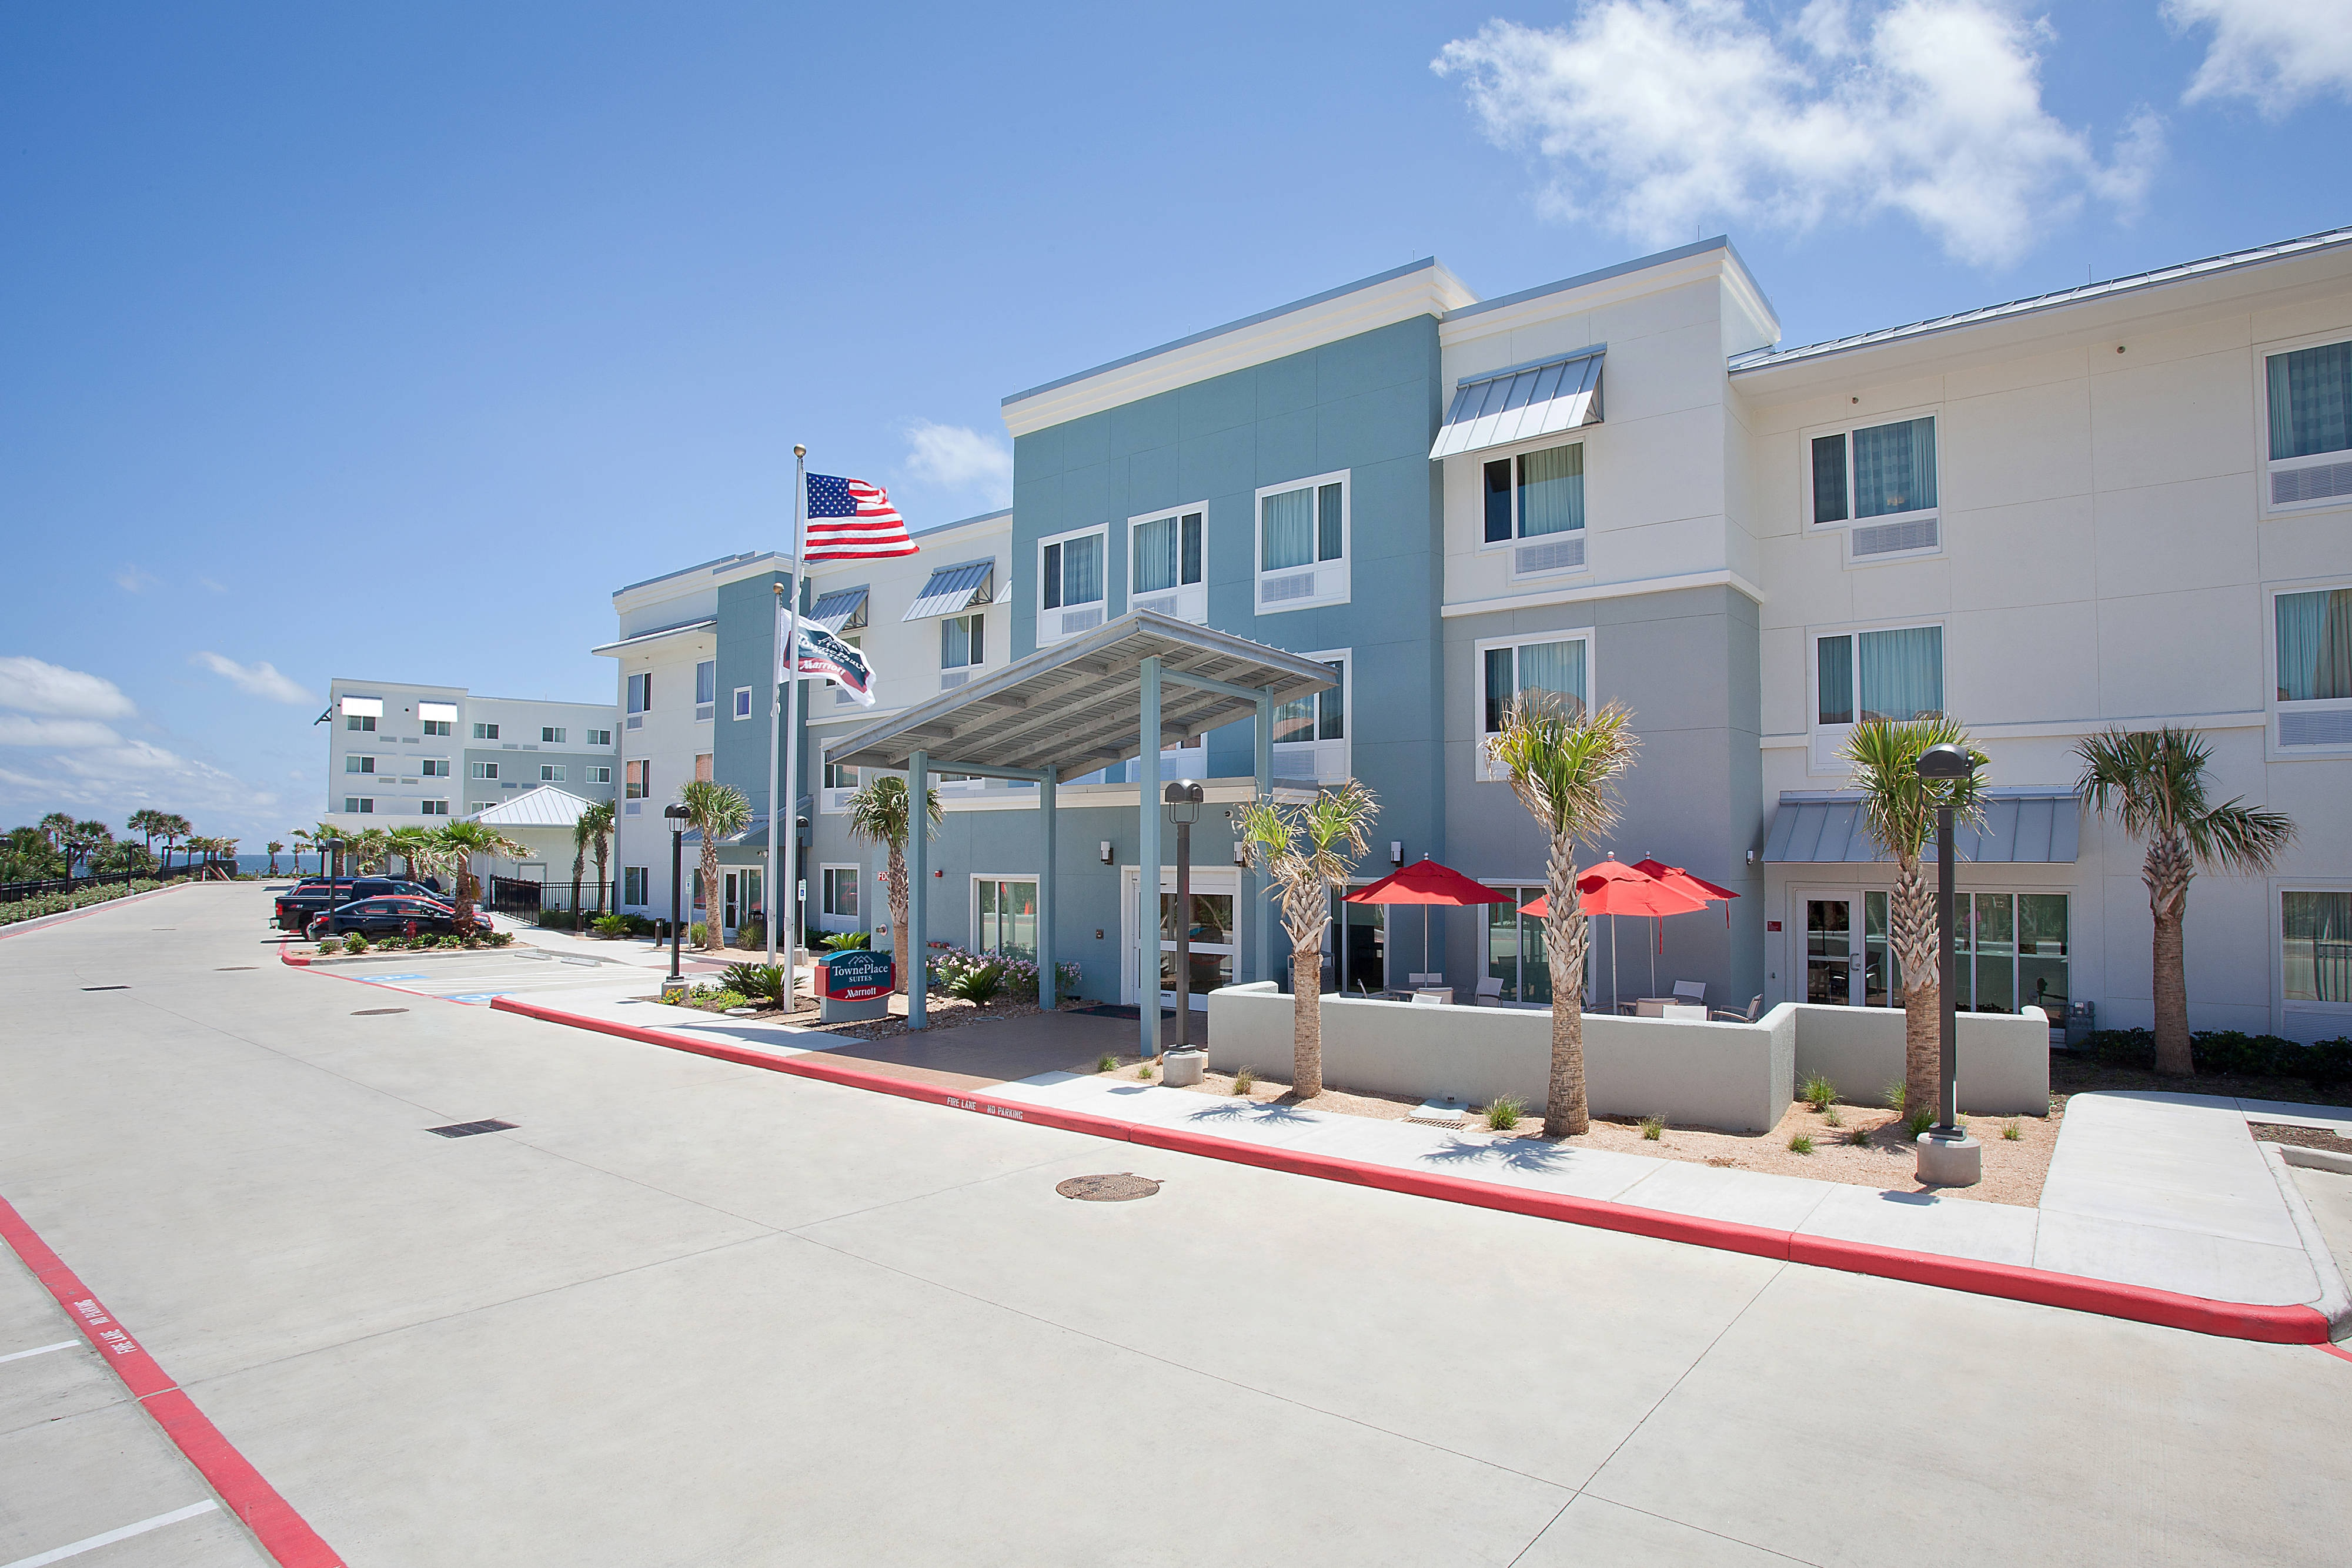 Galveston extended stay hotel exterior